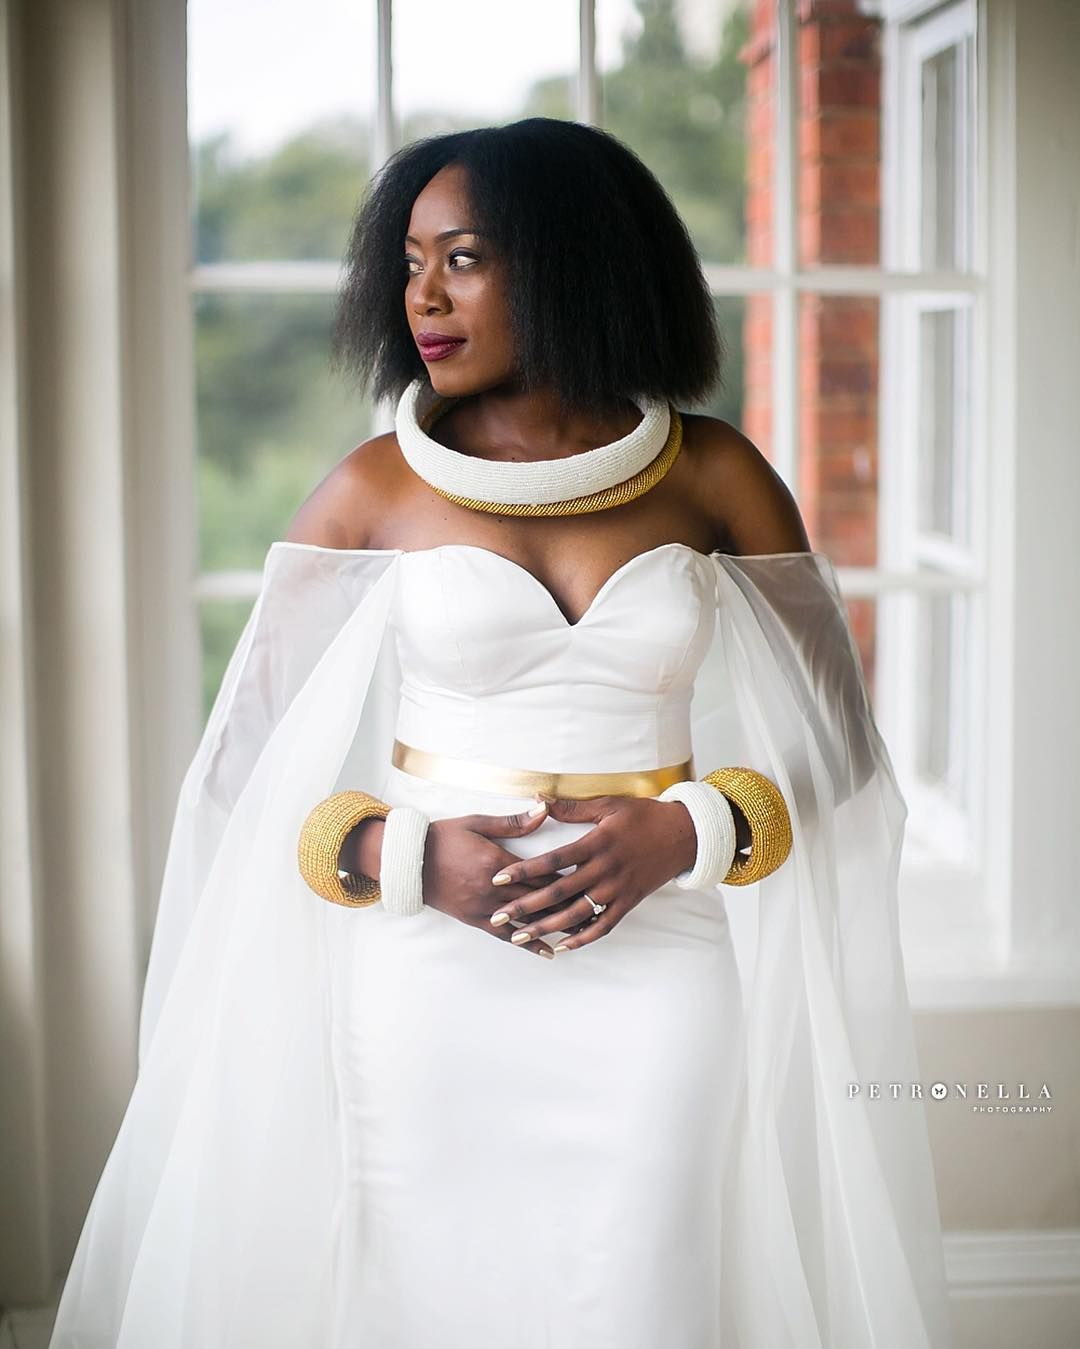 e6c61a5f069d7 Petronella Lugemwa won my heart with this beautiful caped gown. I am ...